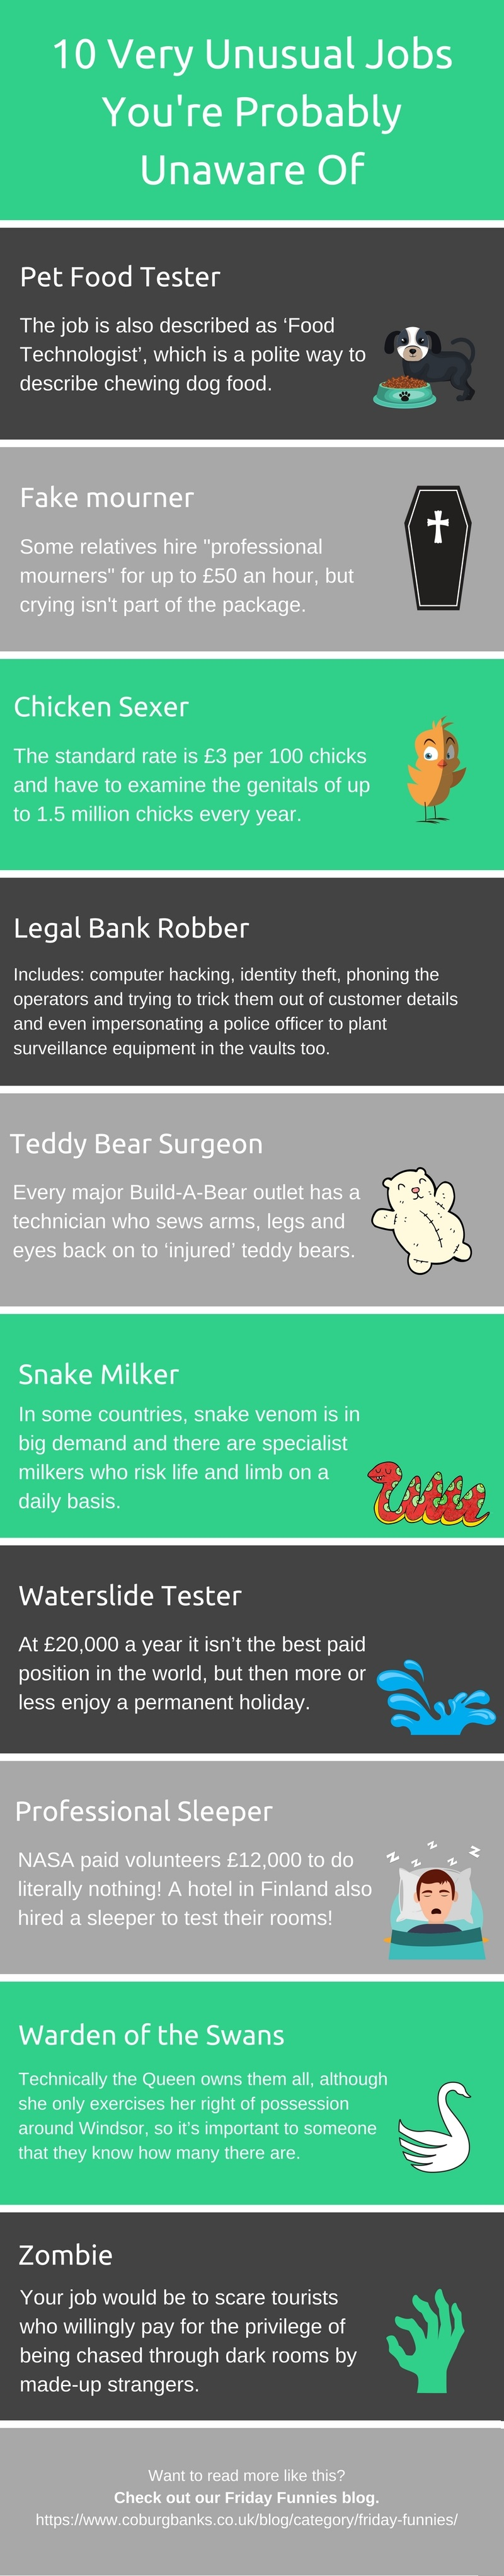 10 Very Unusual Jobs You're Probably Unaware Of 1